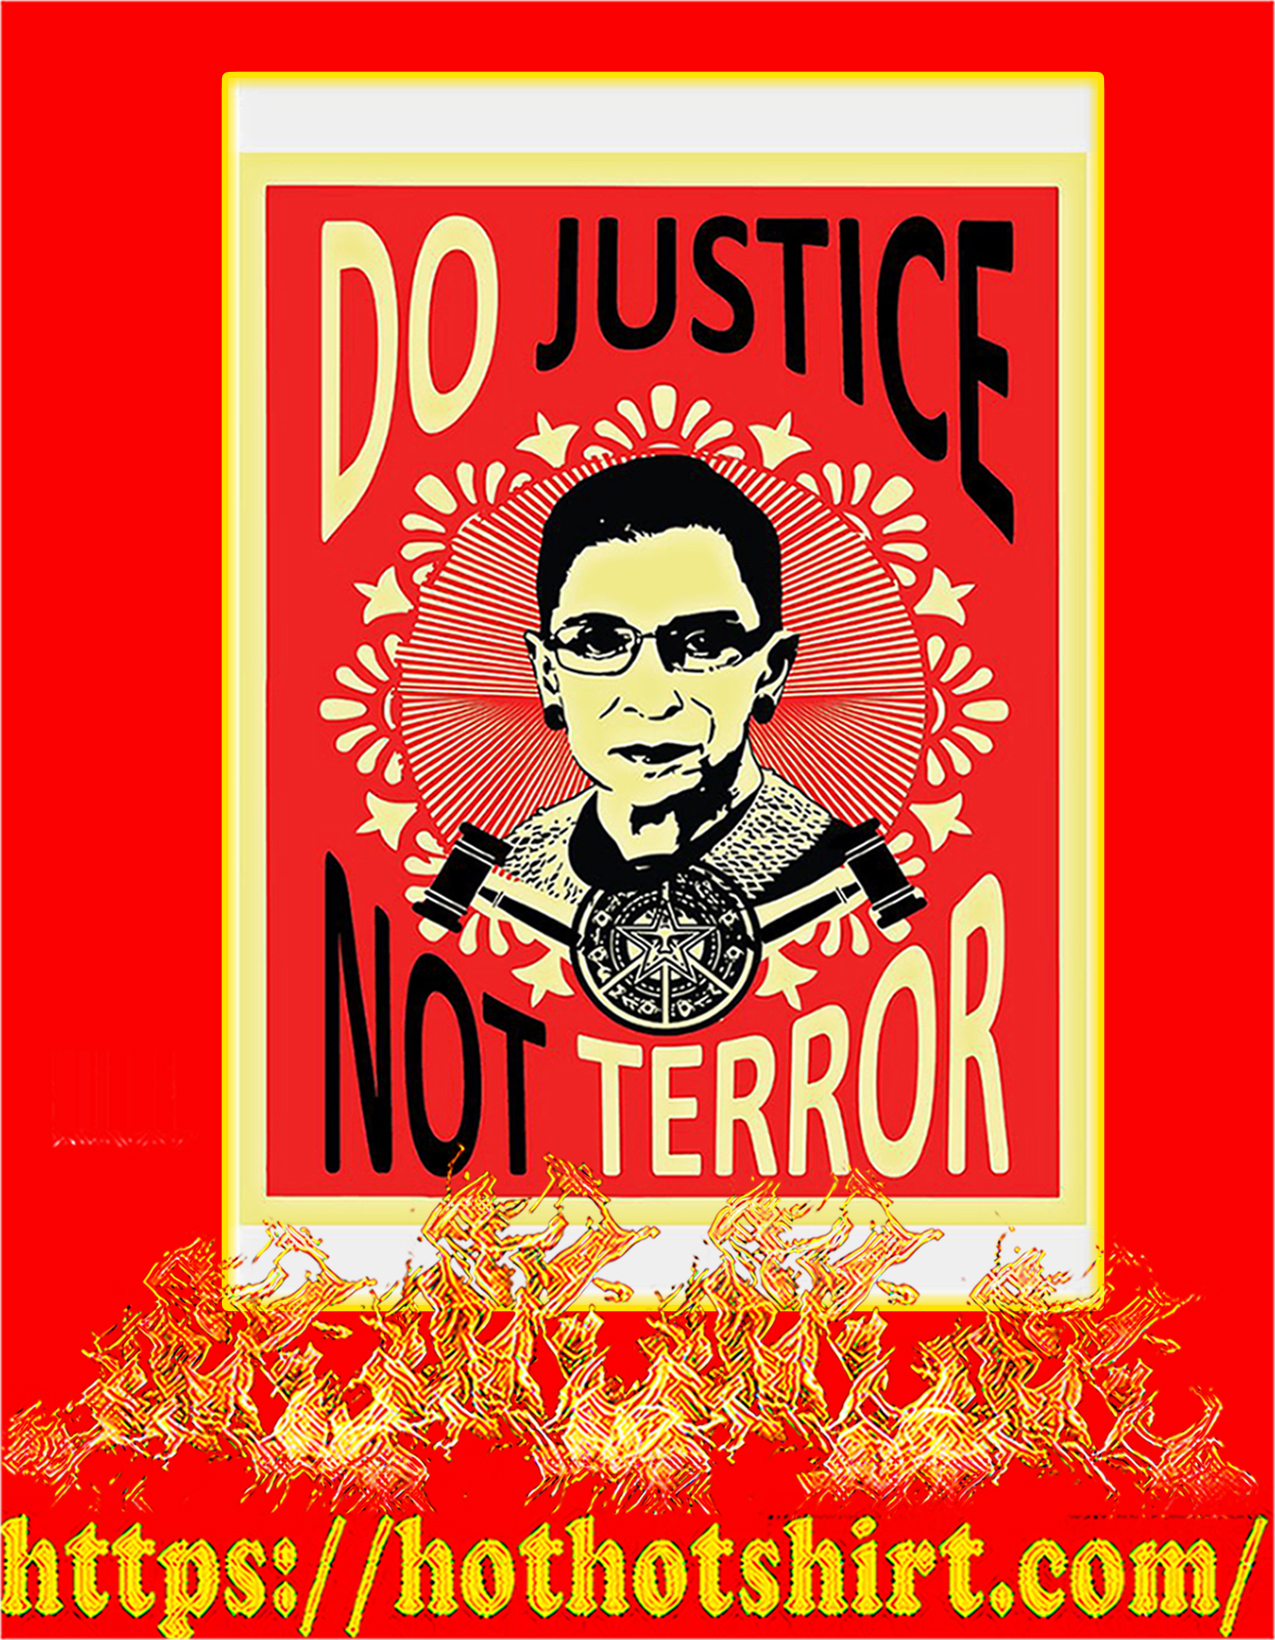 Do justice not terror Ruth bader ginsburg poster - A2